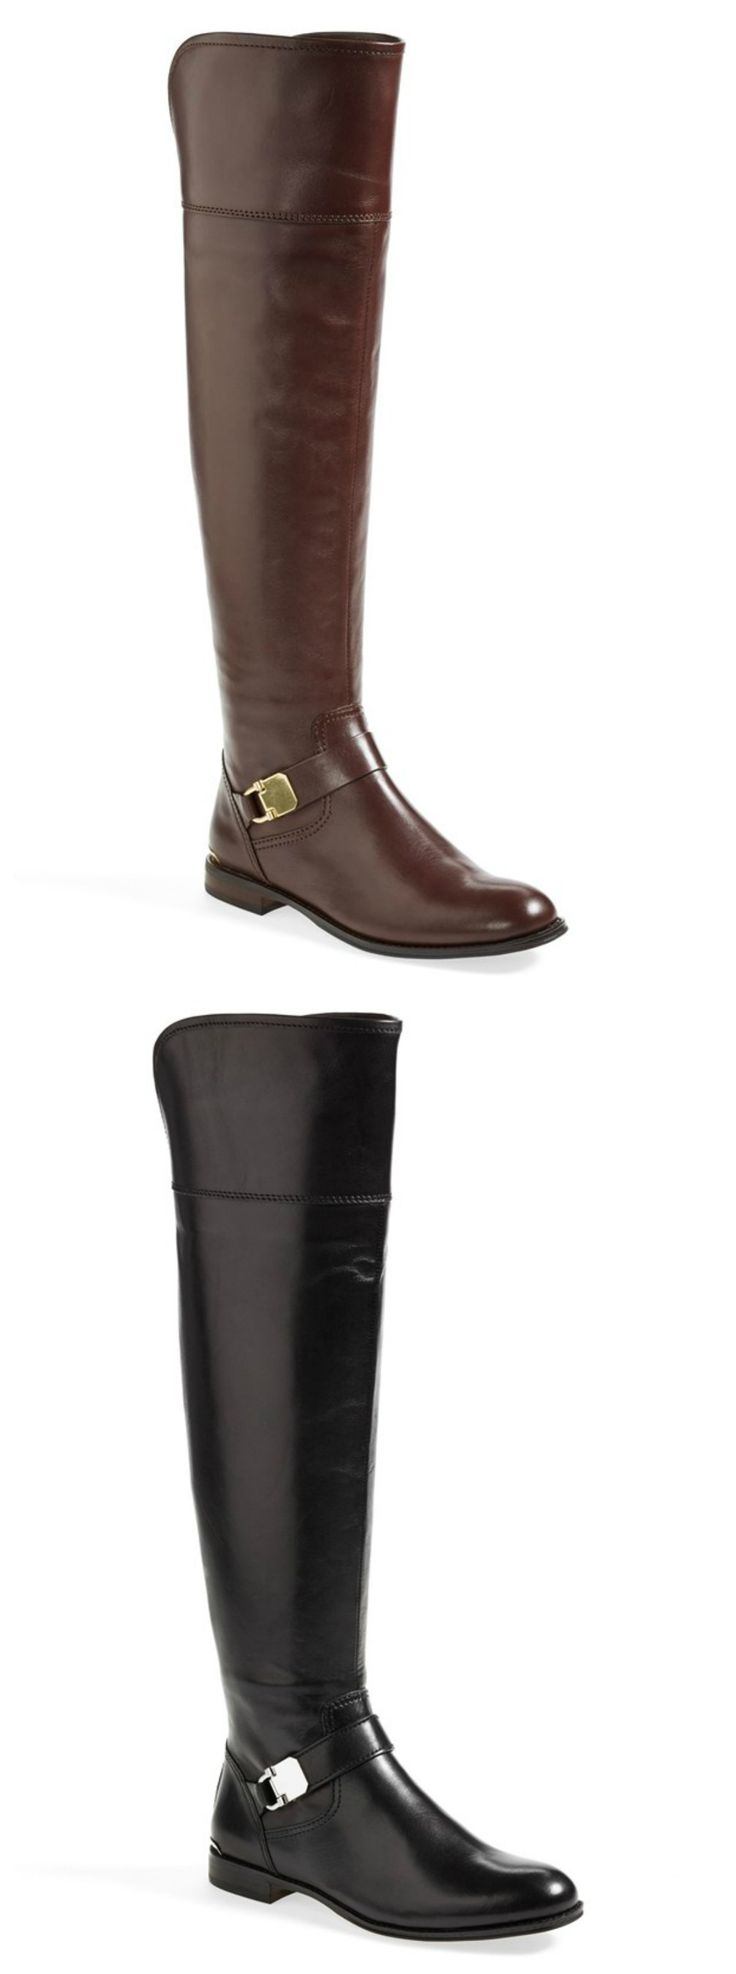 Absolutely love these Coach over the knee leather boots!